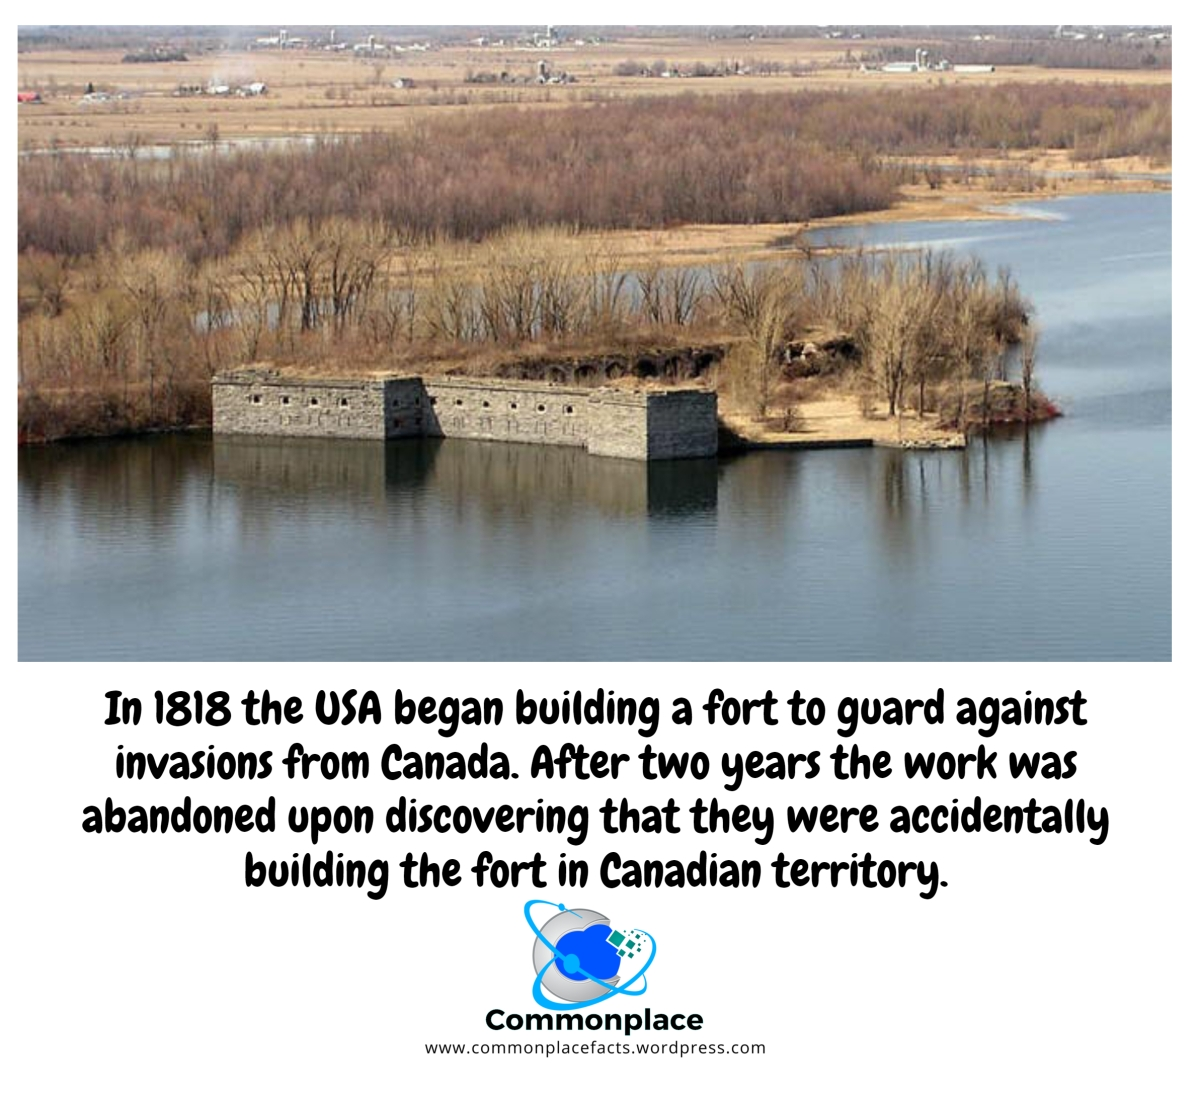 What Do You Do When You Accidentally Build a Fort In the Wrong Country?